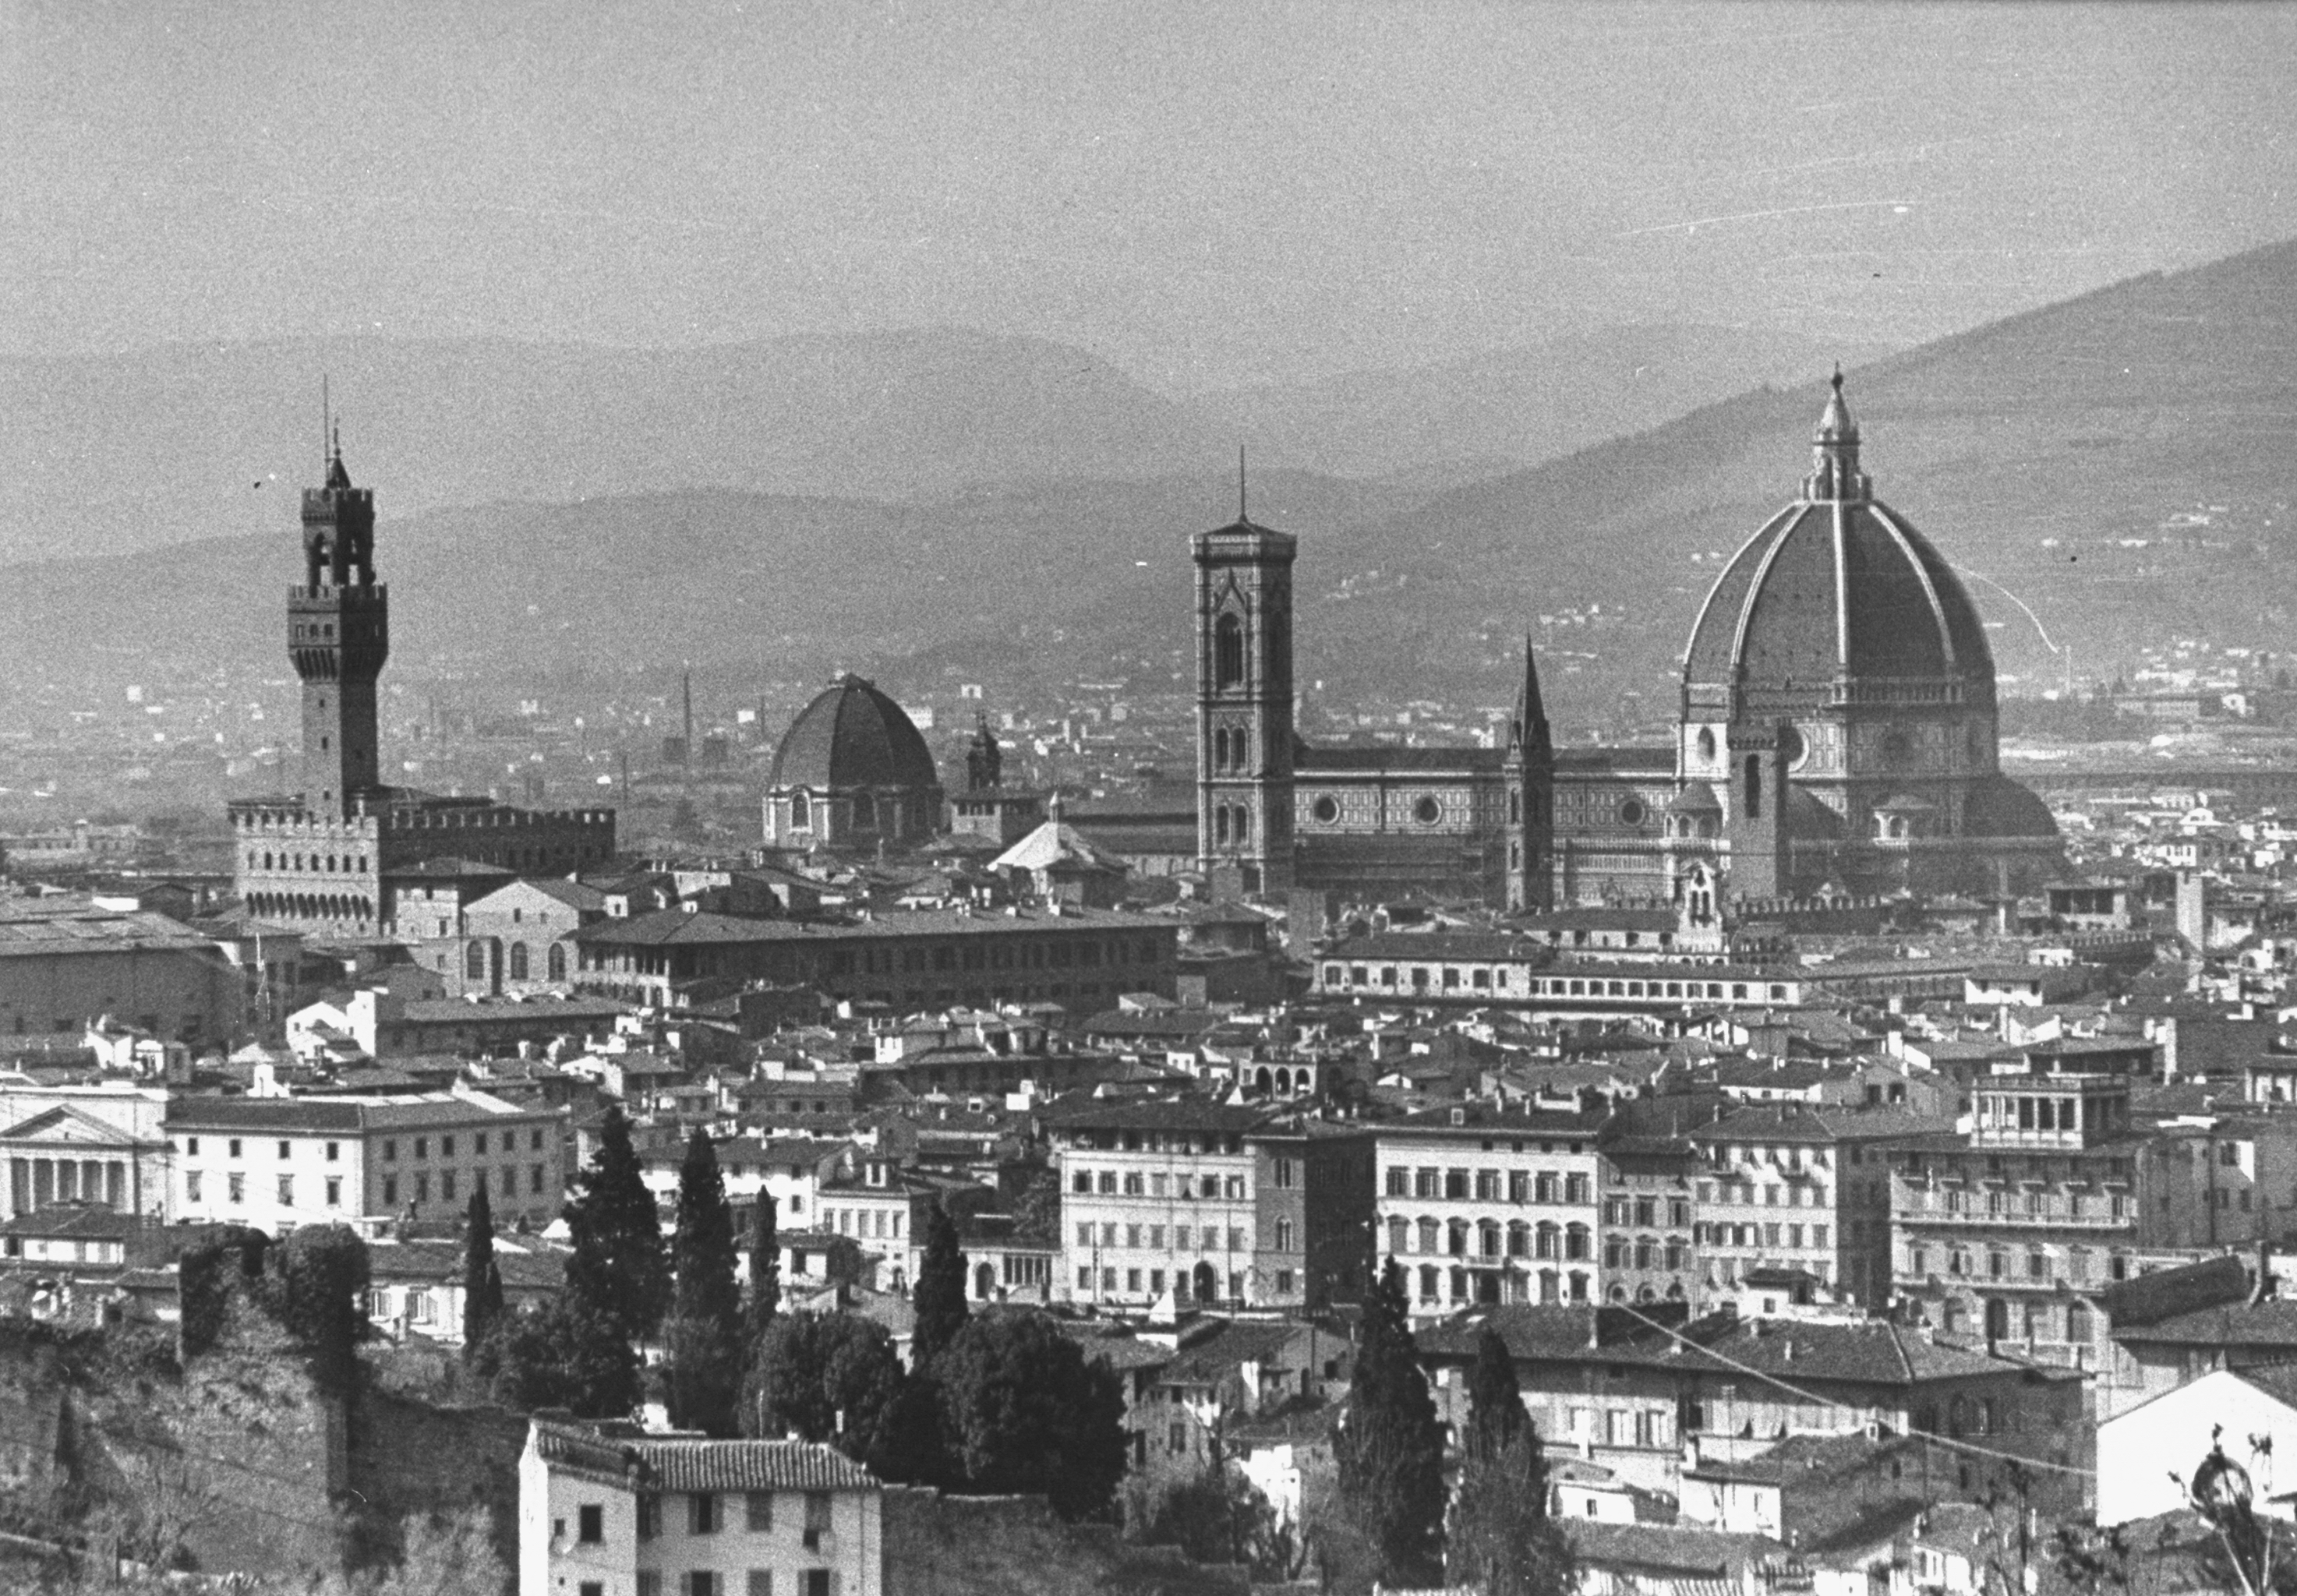 A view of the landscape of the city of Florence